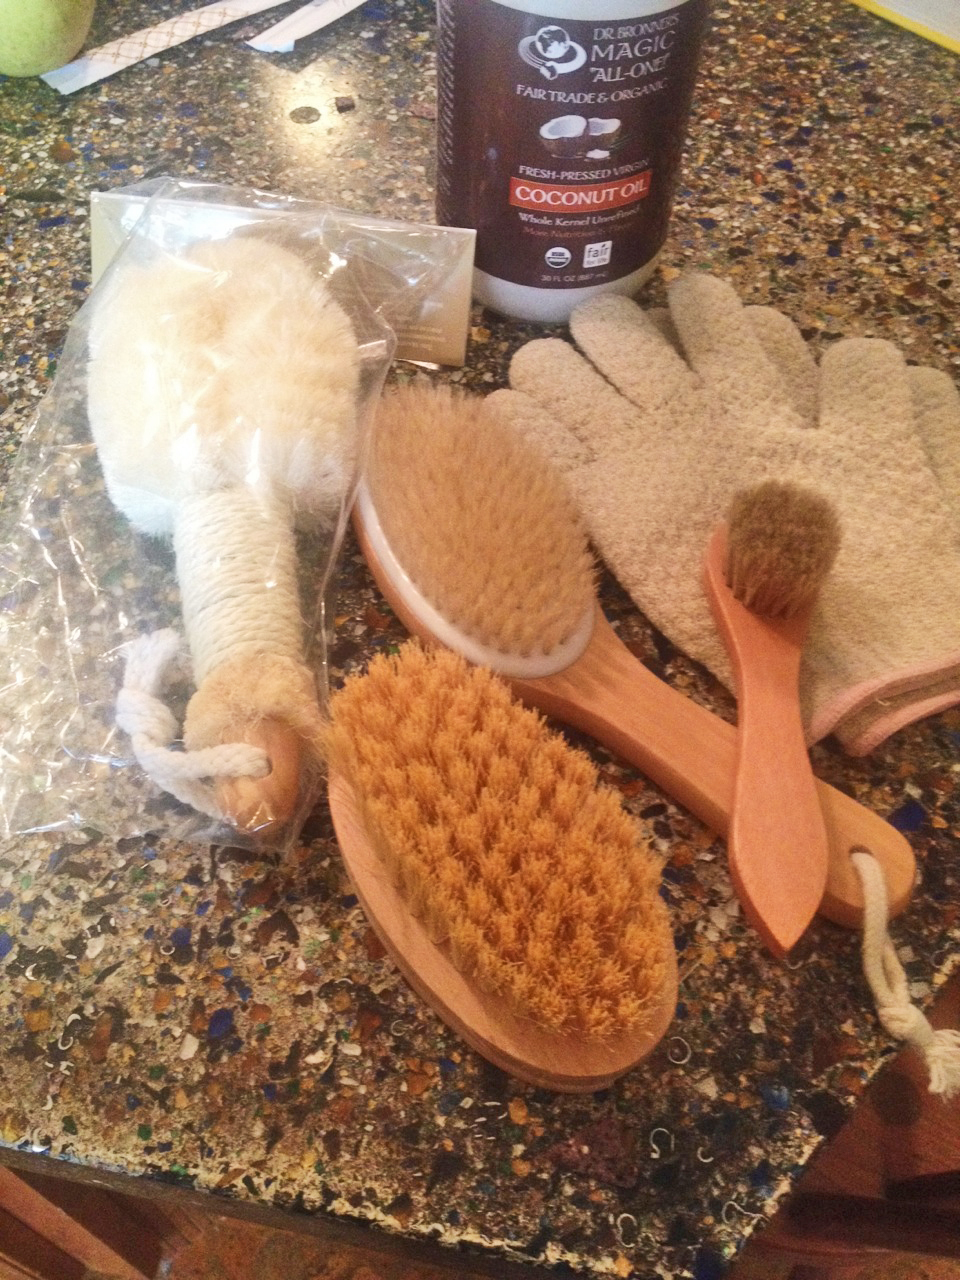 Essentials for nourishing your body's largest organ – THE SKIN: a loofah brush, dry brushes, exfoliating gloves, and organic, raw coconut oil.